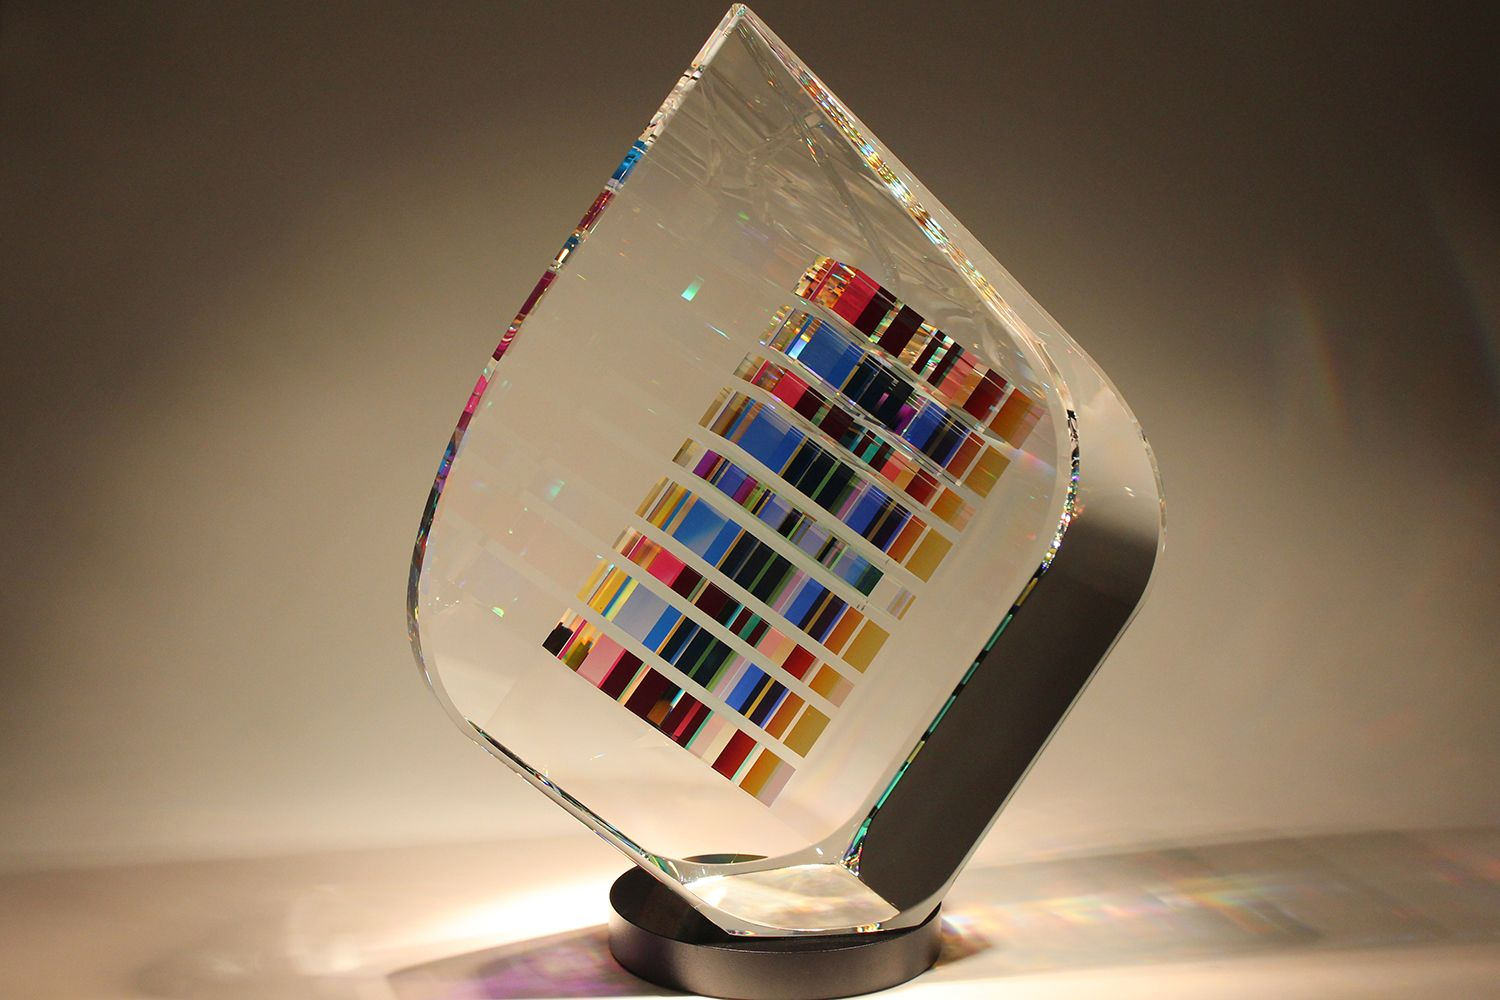 Tierdrop Contemporary Glass Sculpture Fine Art